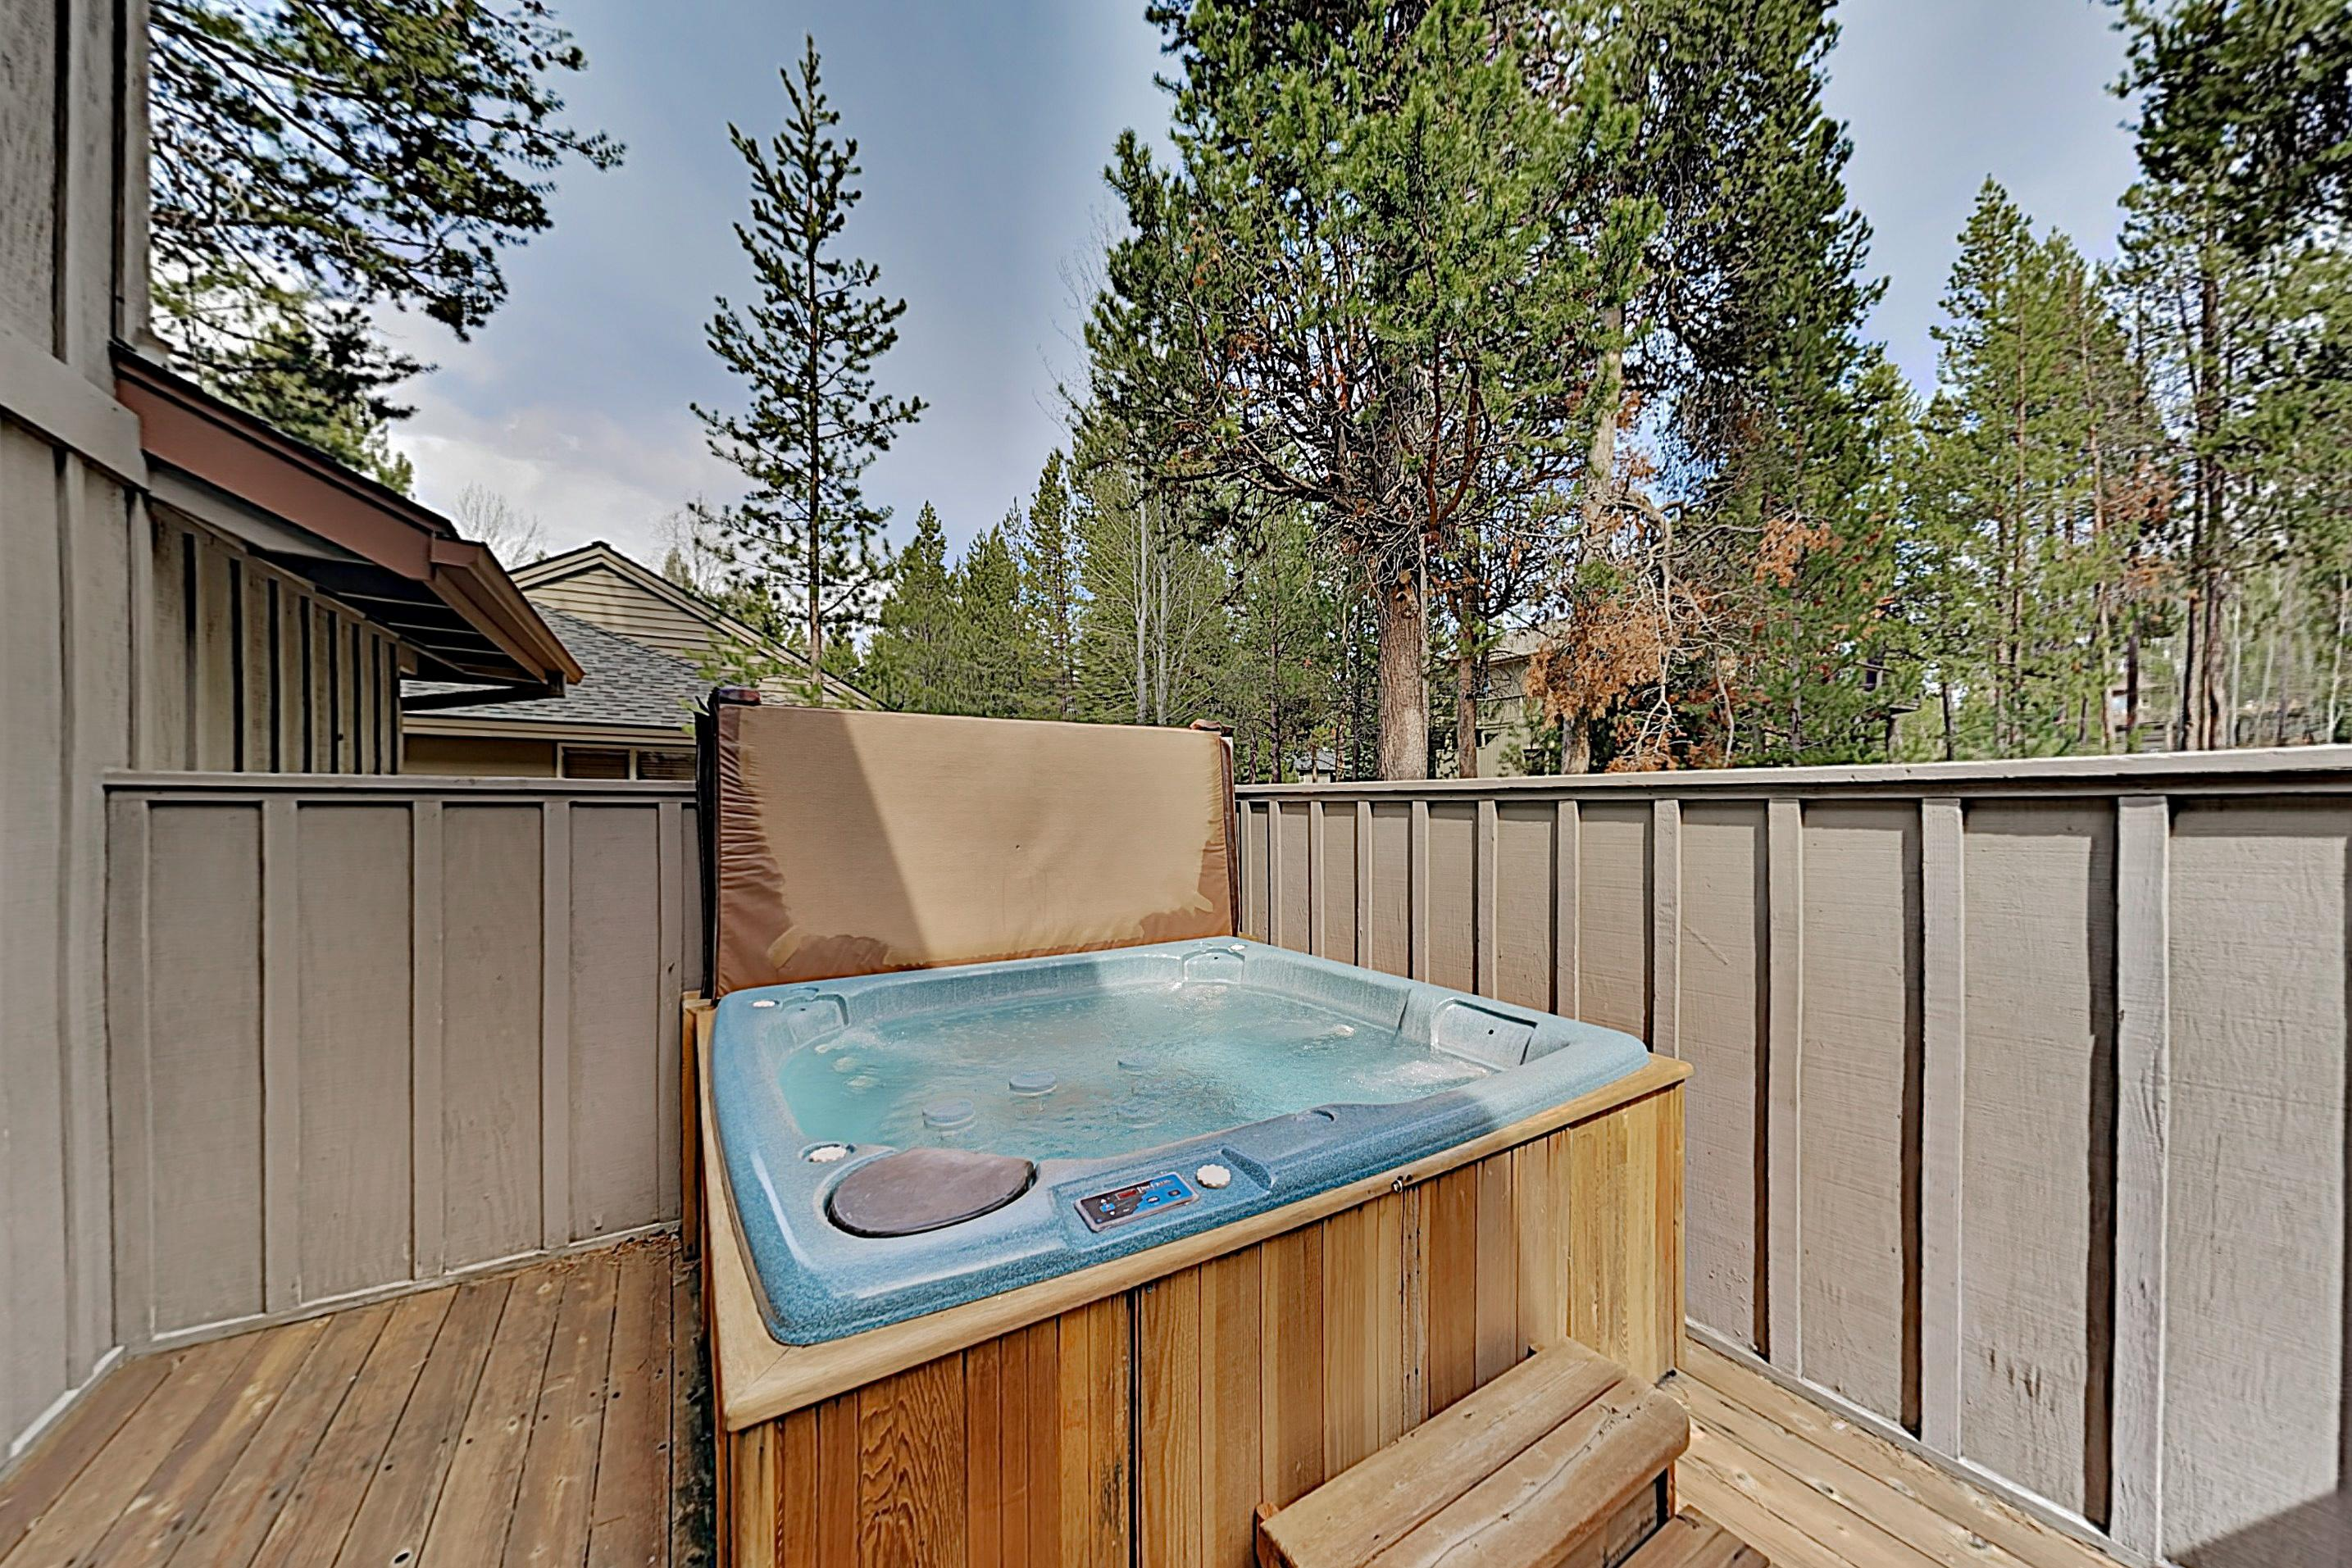 Take relaxing soaks in the private hot tub on the spacious deck.